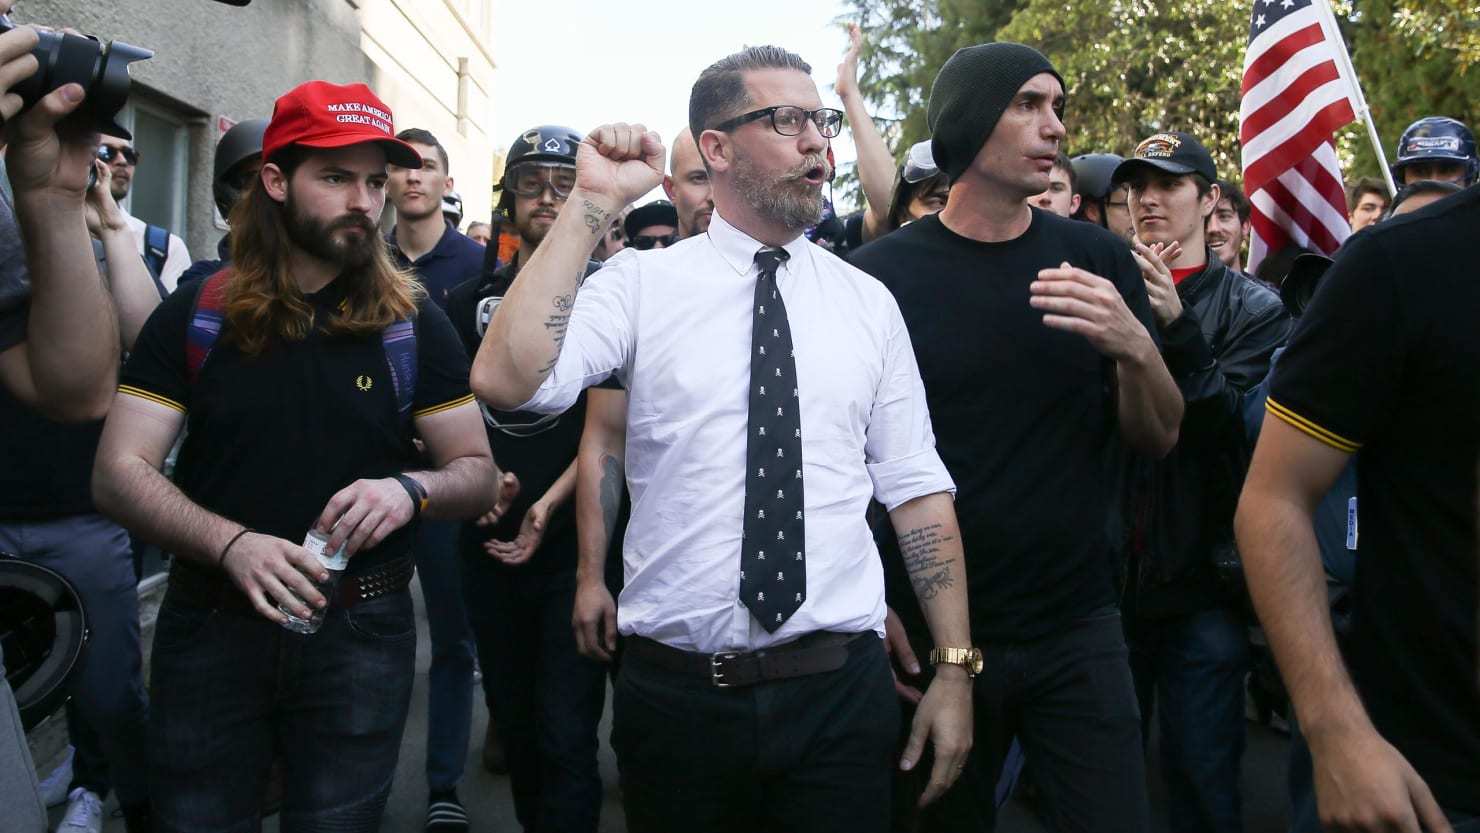 Republicans Are Adopting the Proud Boys